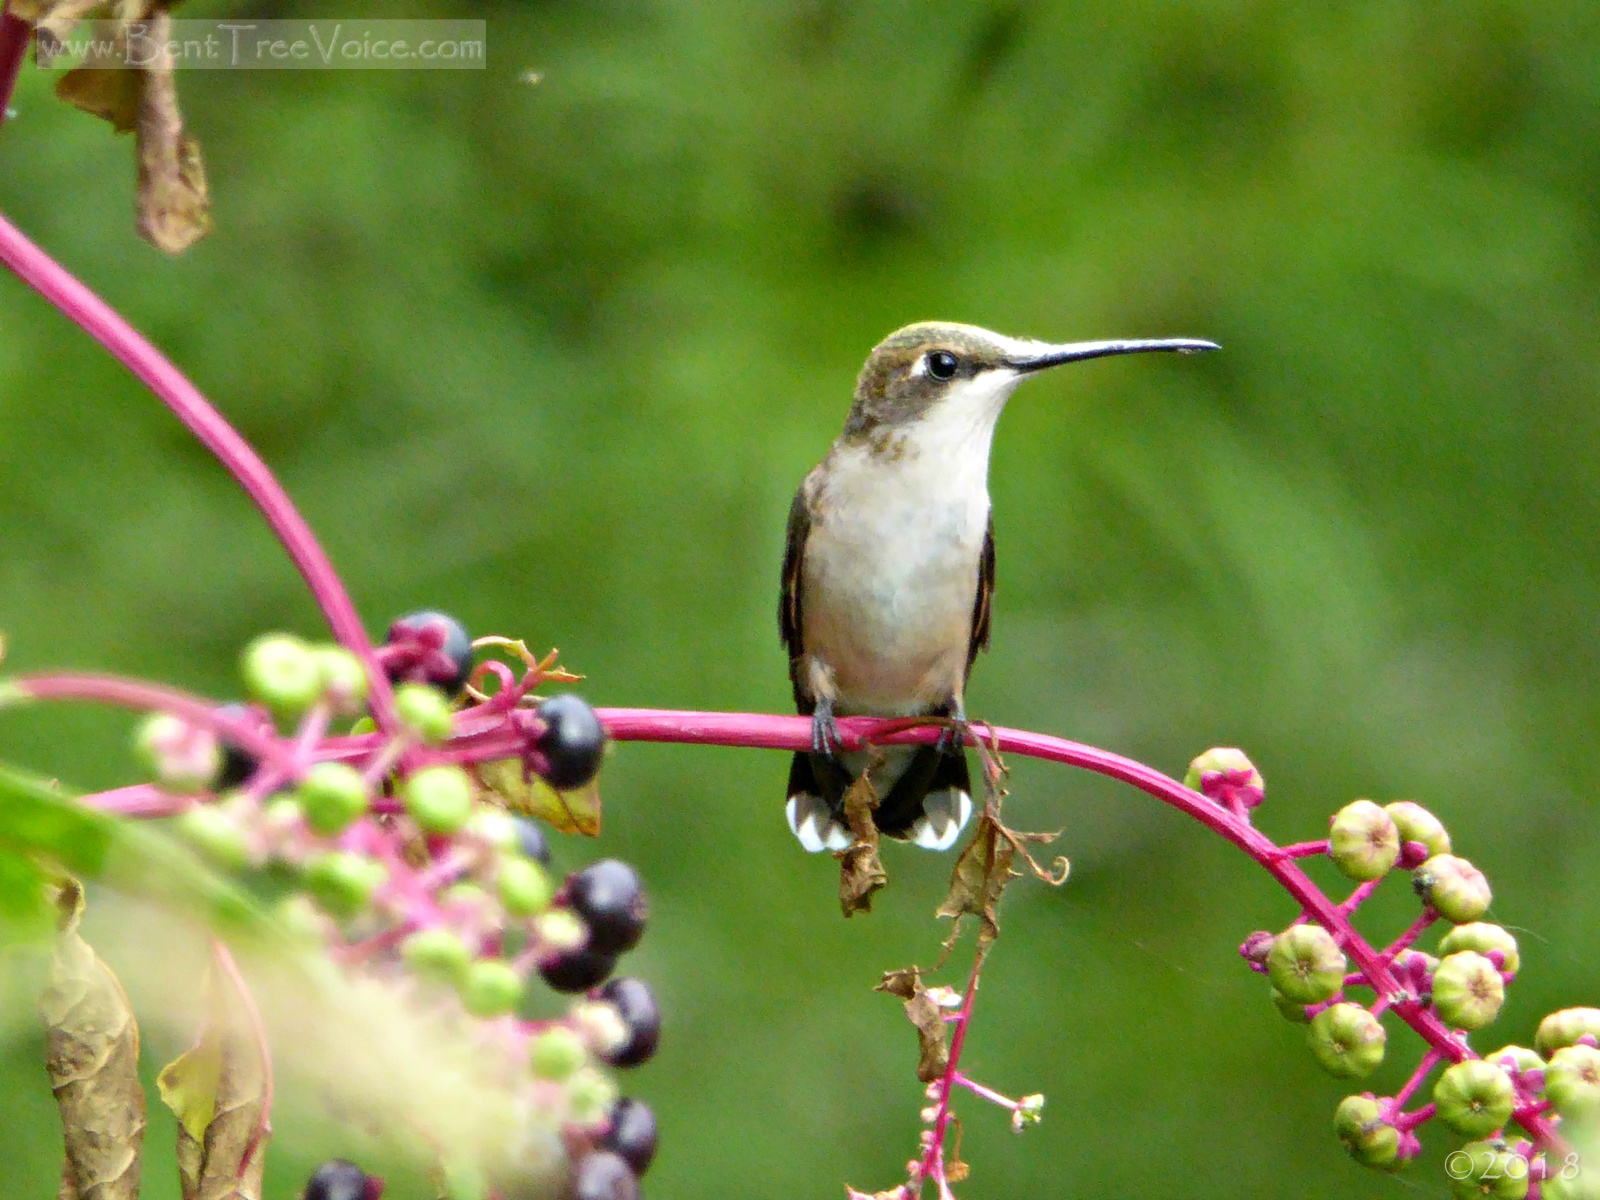 September 5, 2018 - hummingbird on pokeweed in Bent Tree